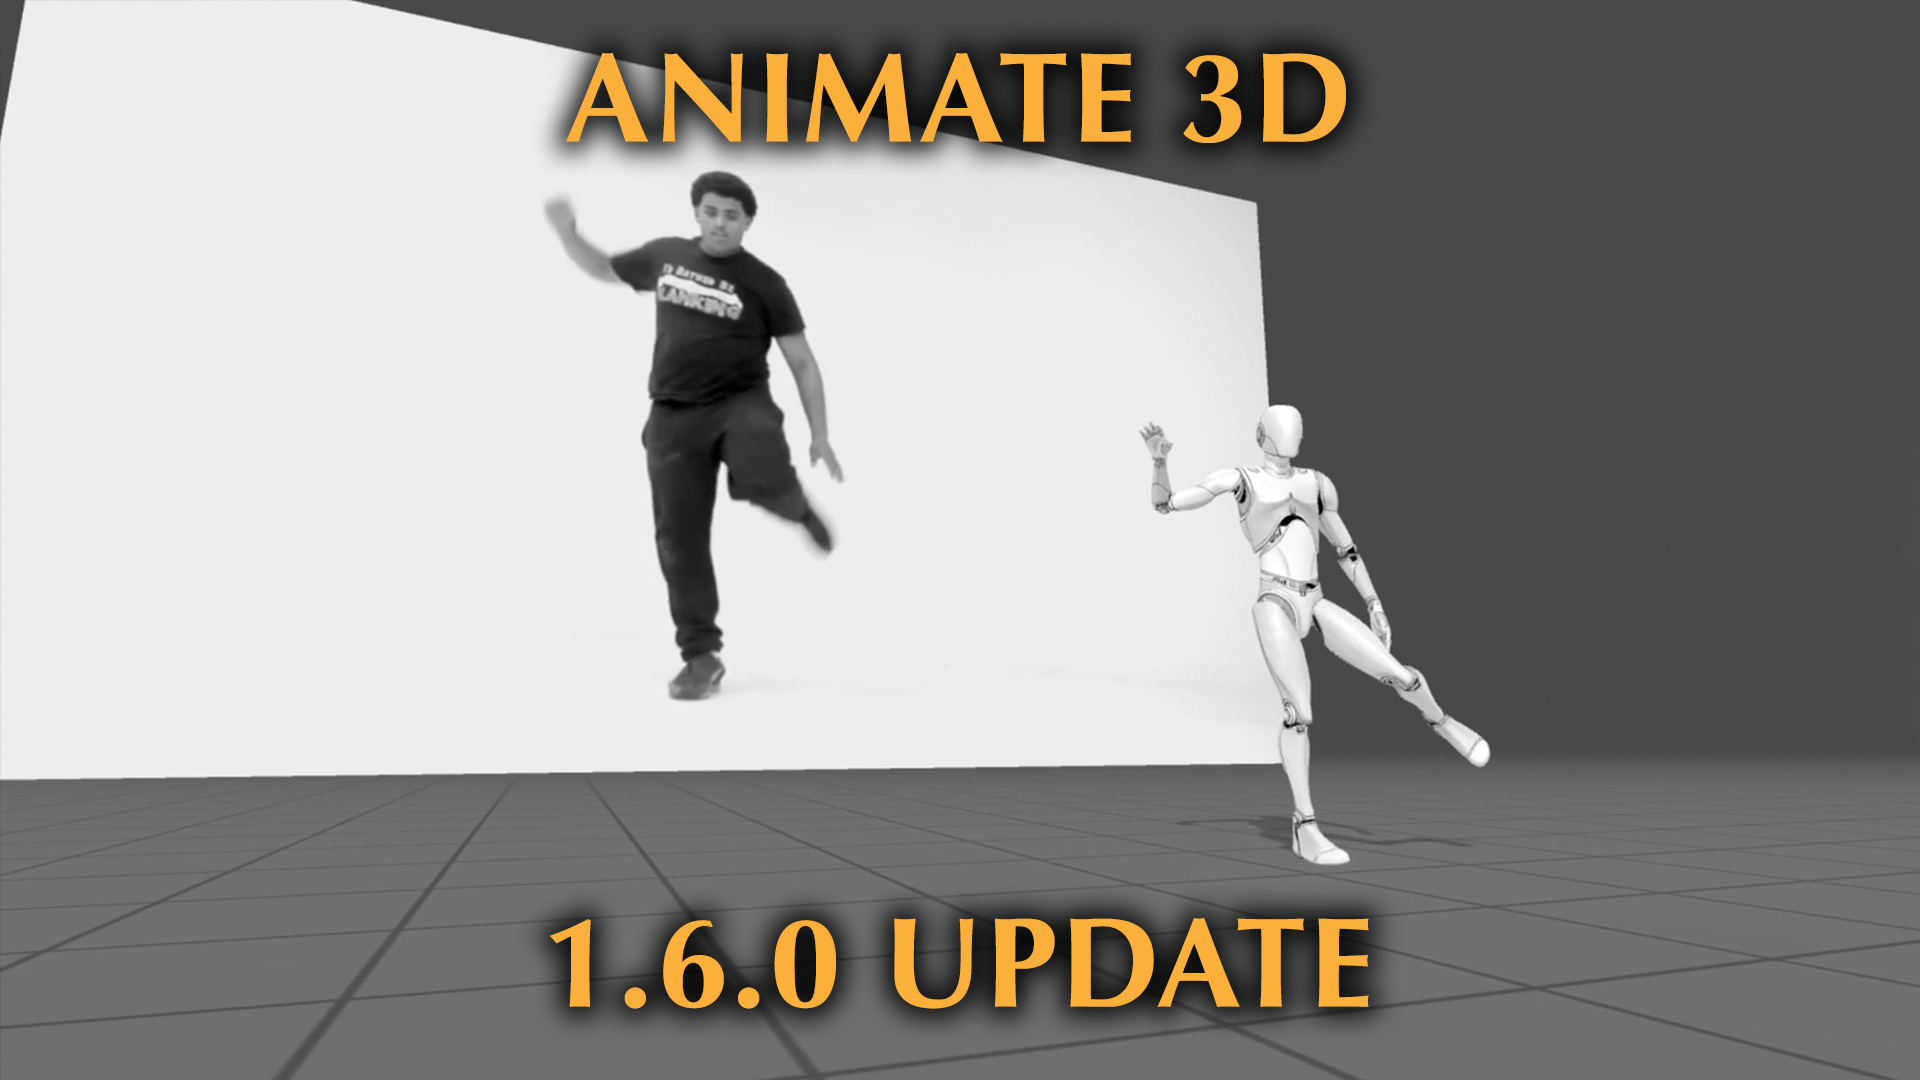 Animate 3D - Version 1.6.0 Release